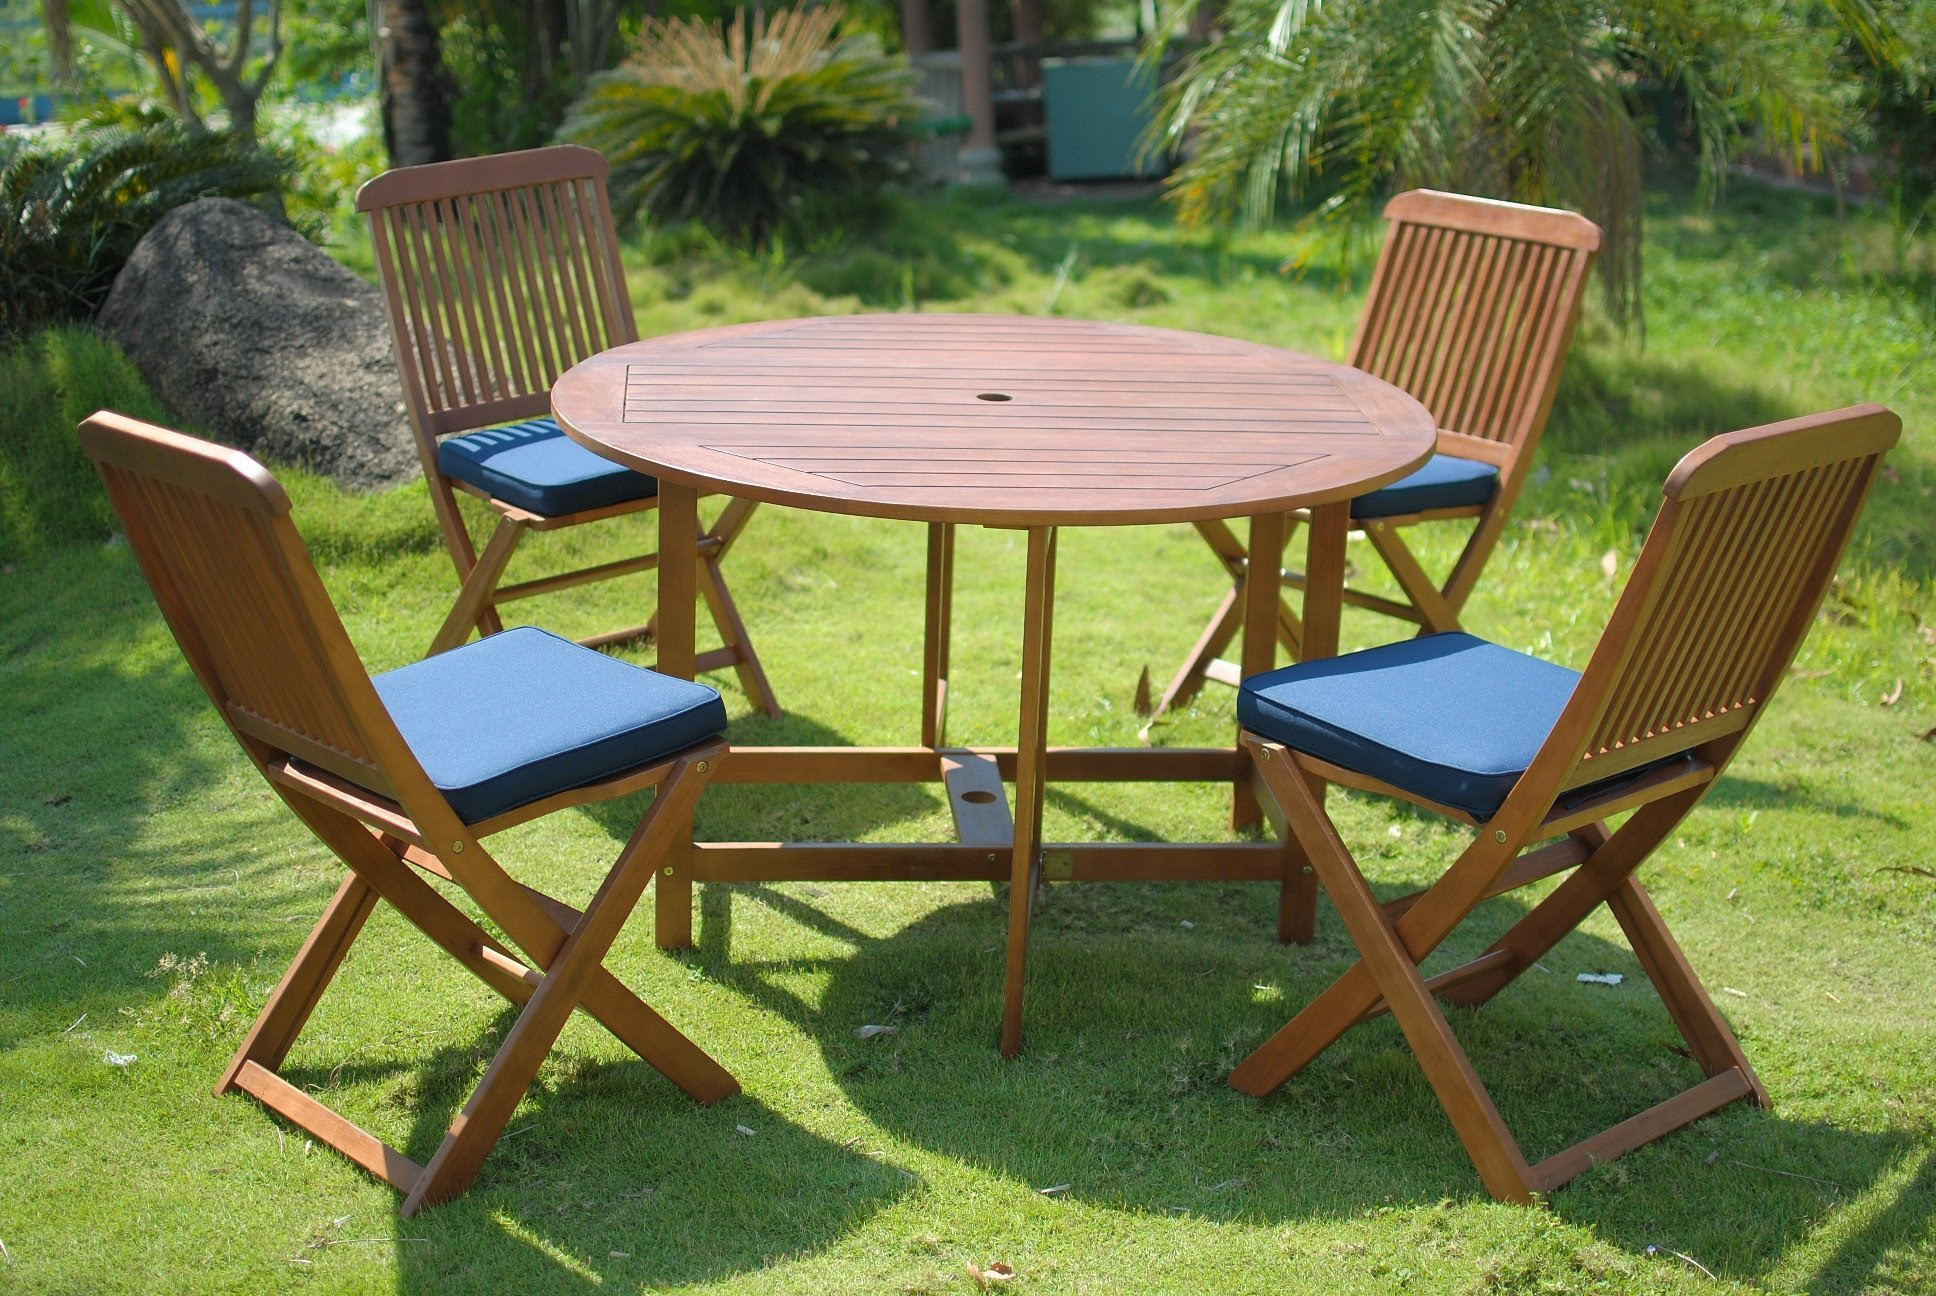 Elegance 4 Seater Folding Round Patio Dining Set - Simply Wood